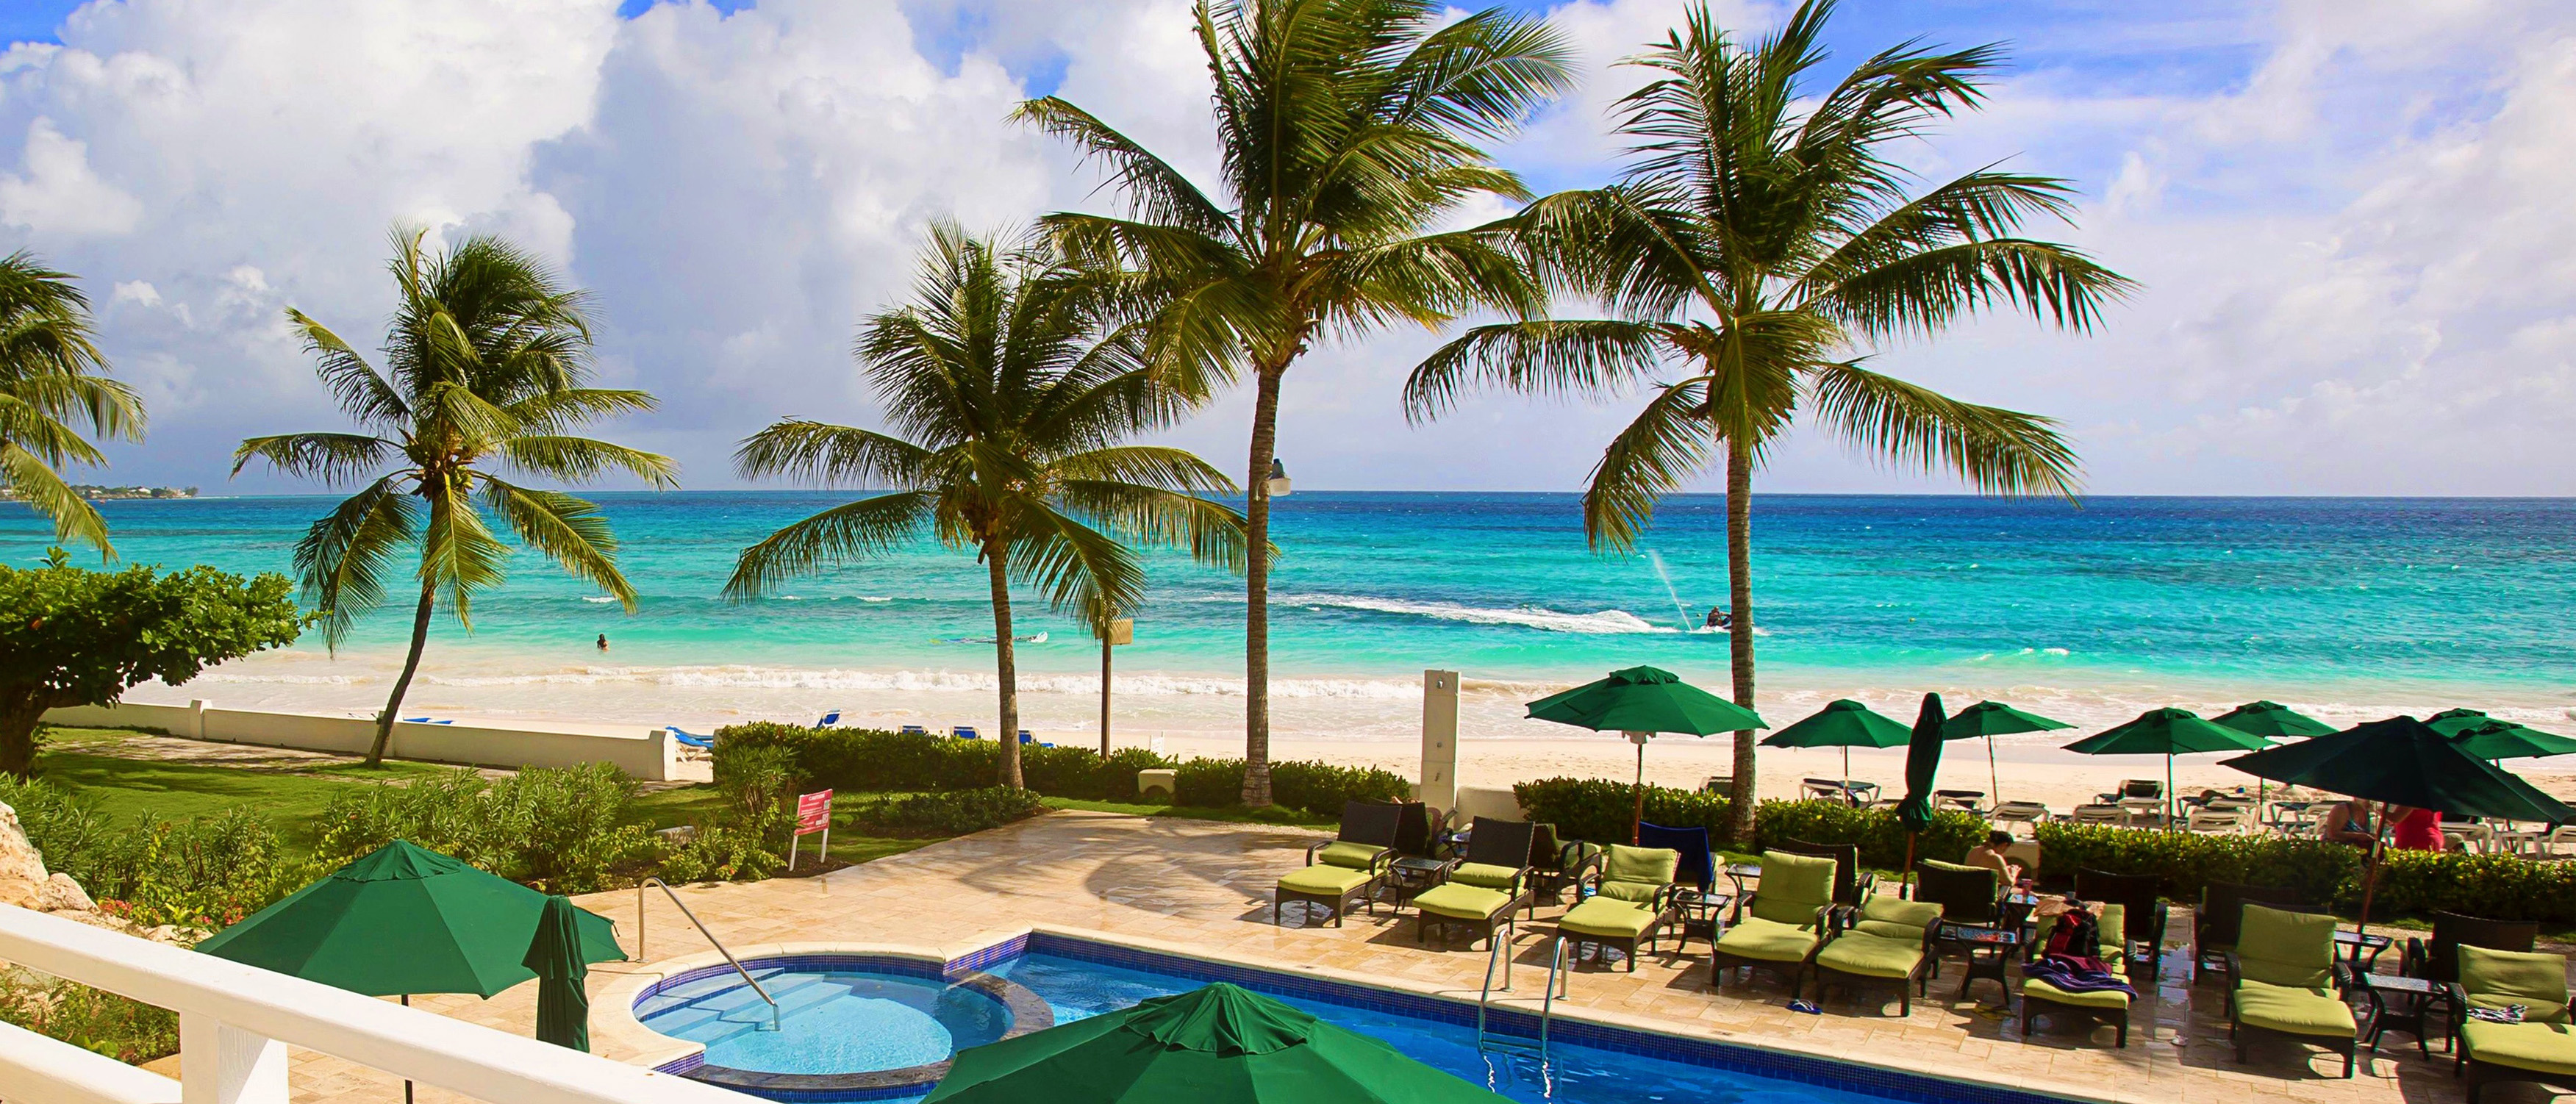 Luxury family hotels in barbados 1 sea breeze beach hotel